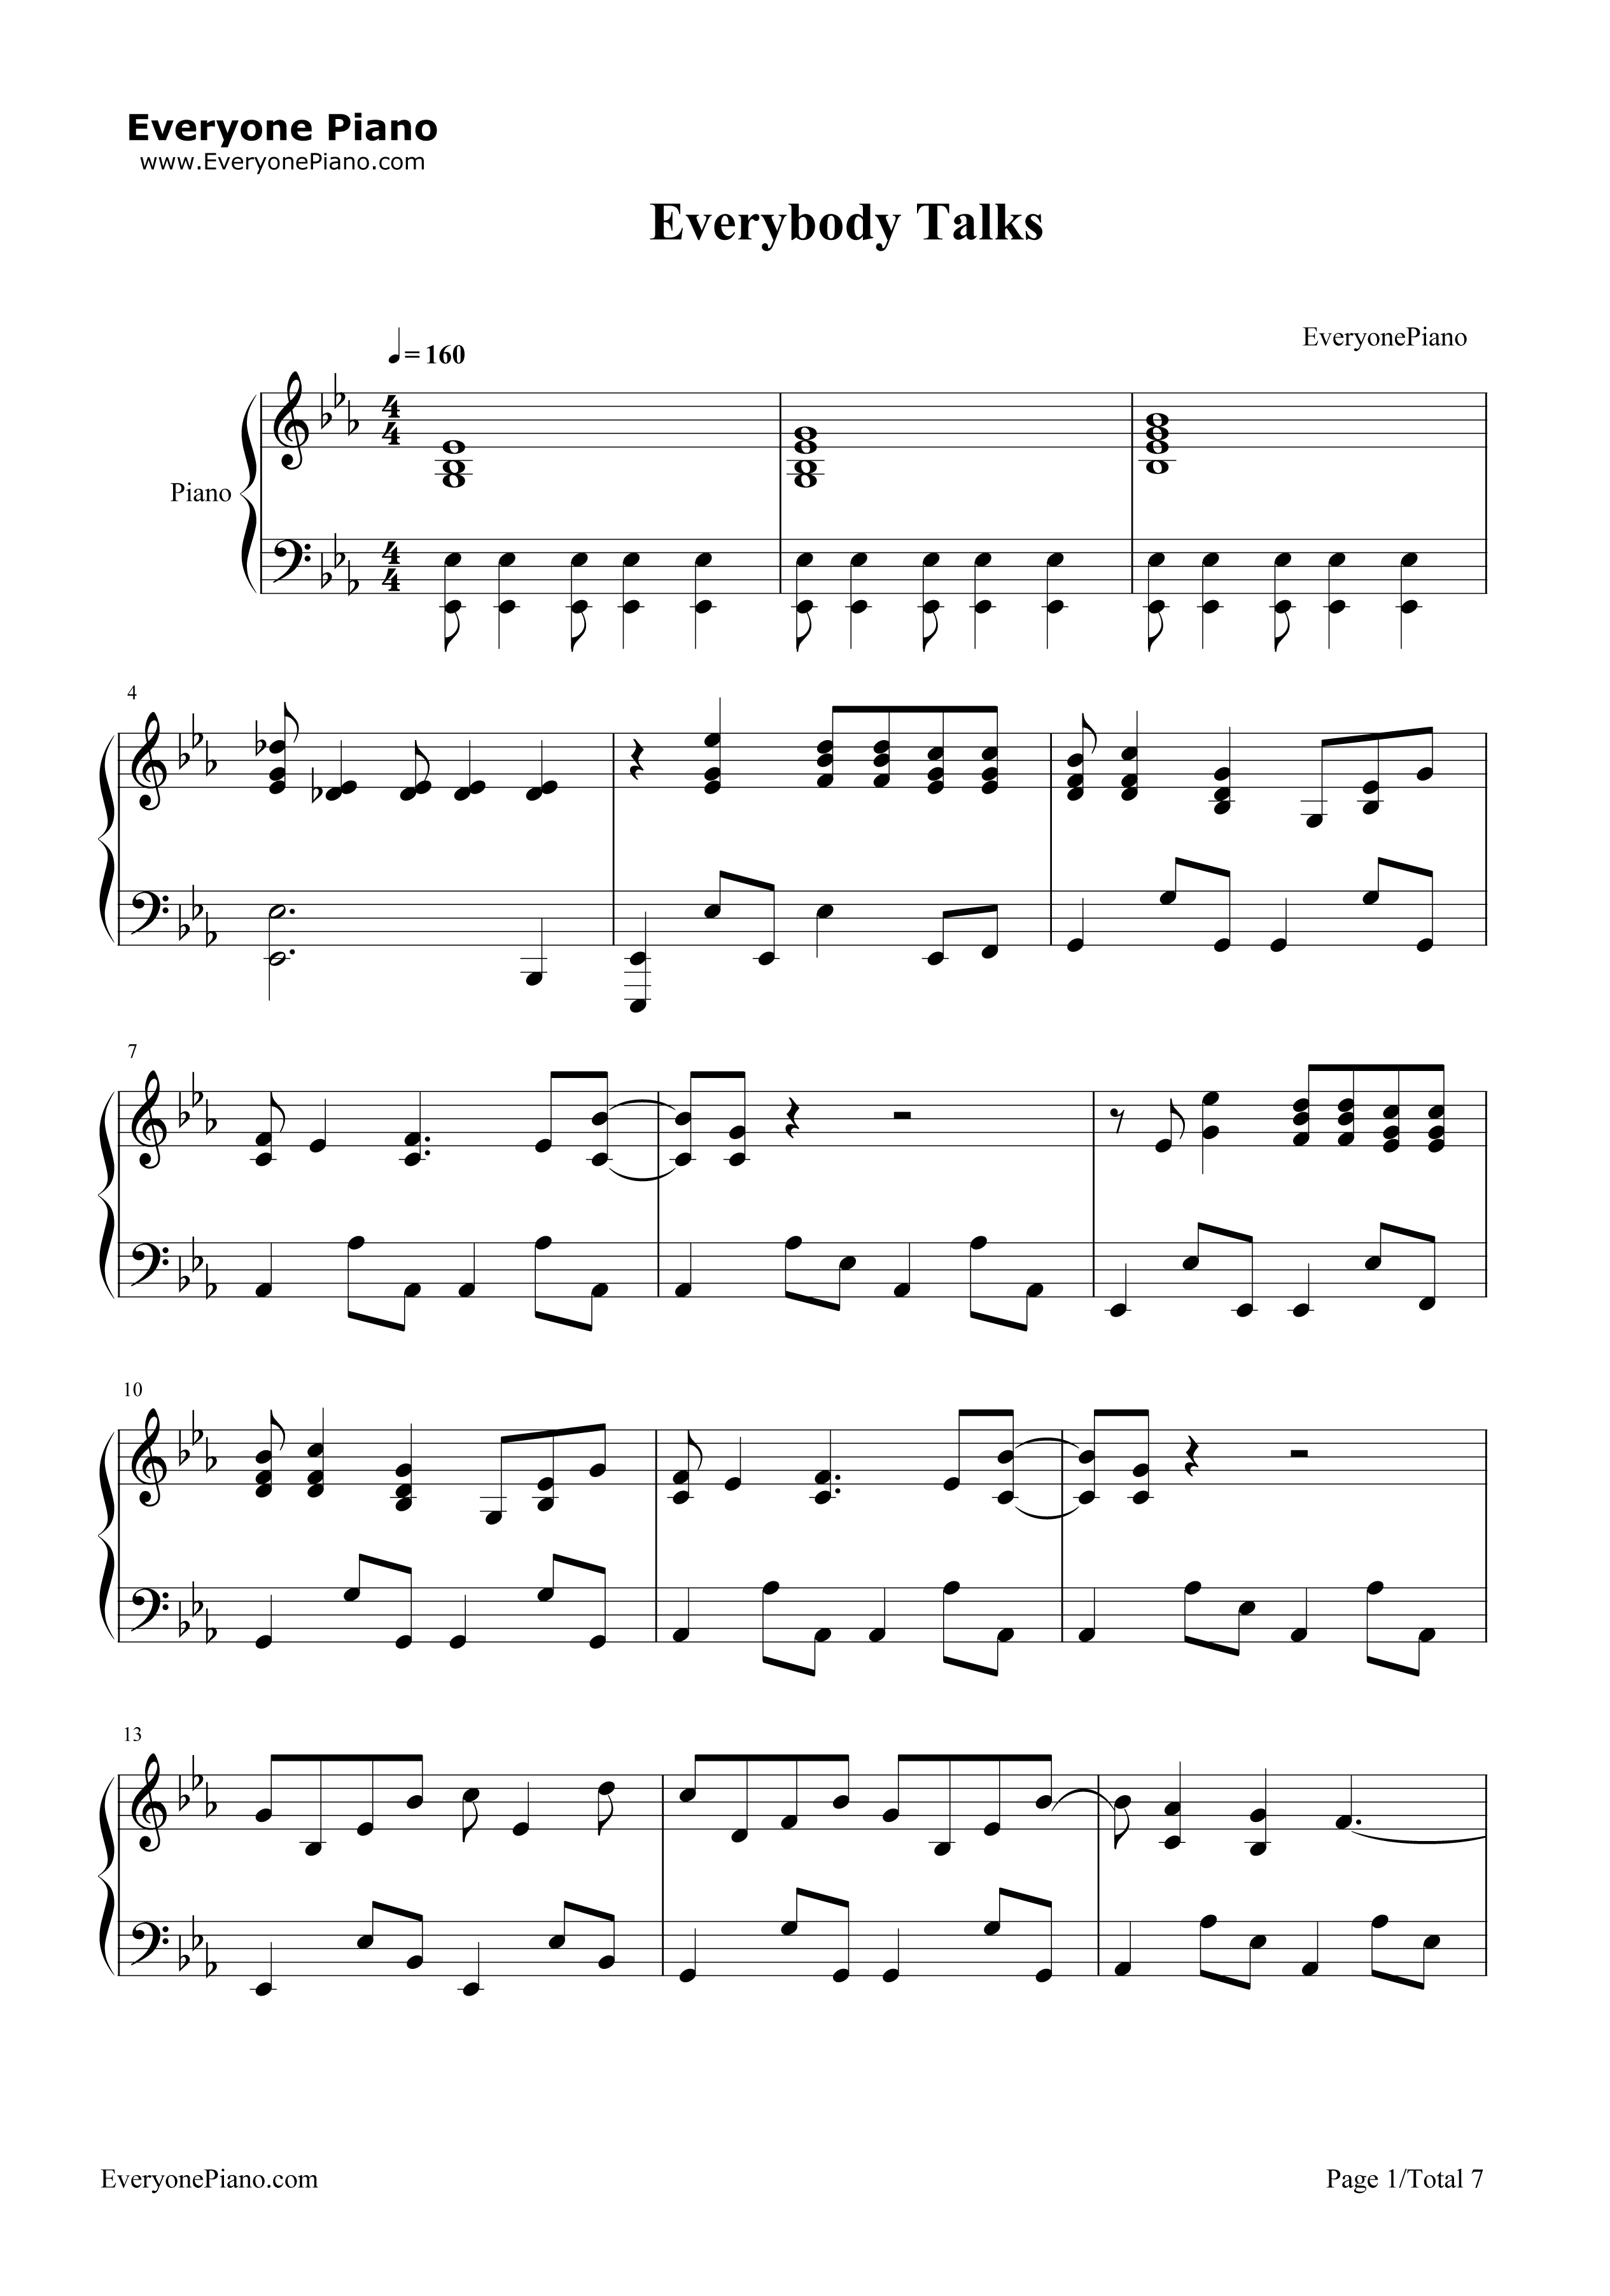 Everybody talks neon trees stave preview 1 free piano sheet music listen now print sheet everybody talks neon trees stave preview 1 hexwebz Image collections